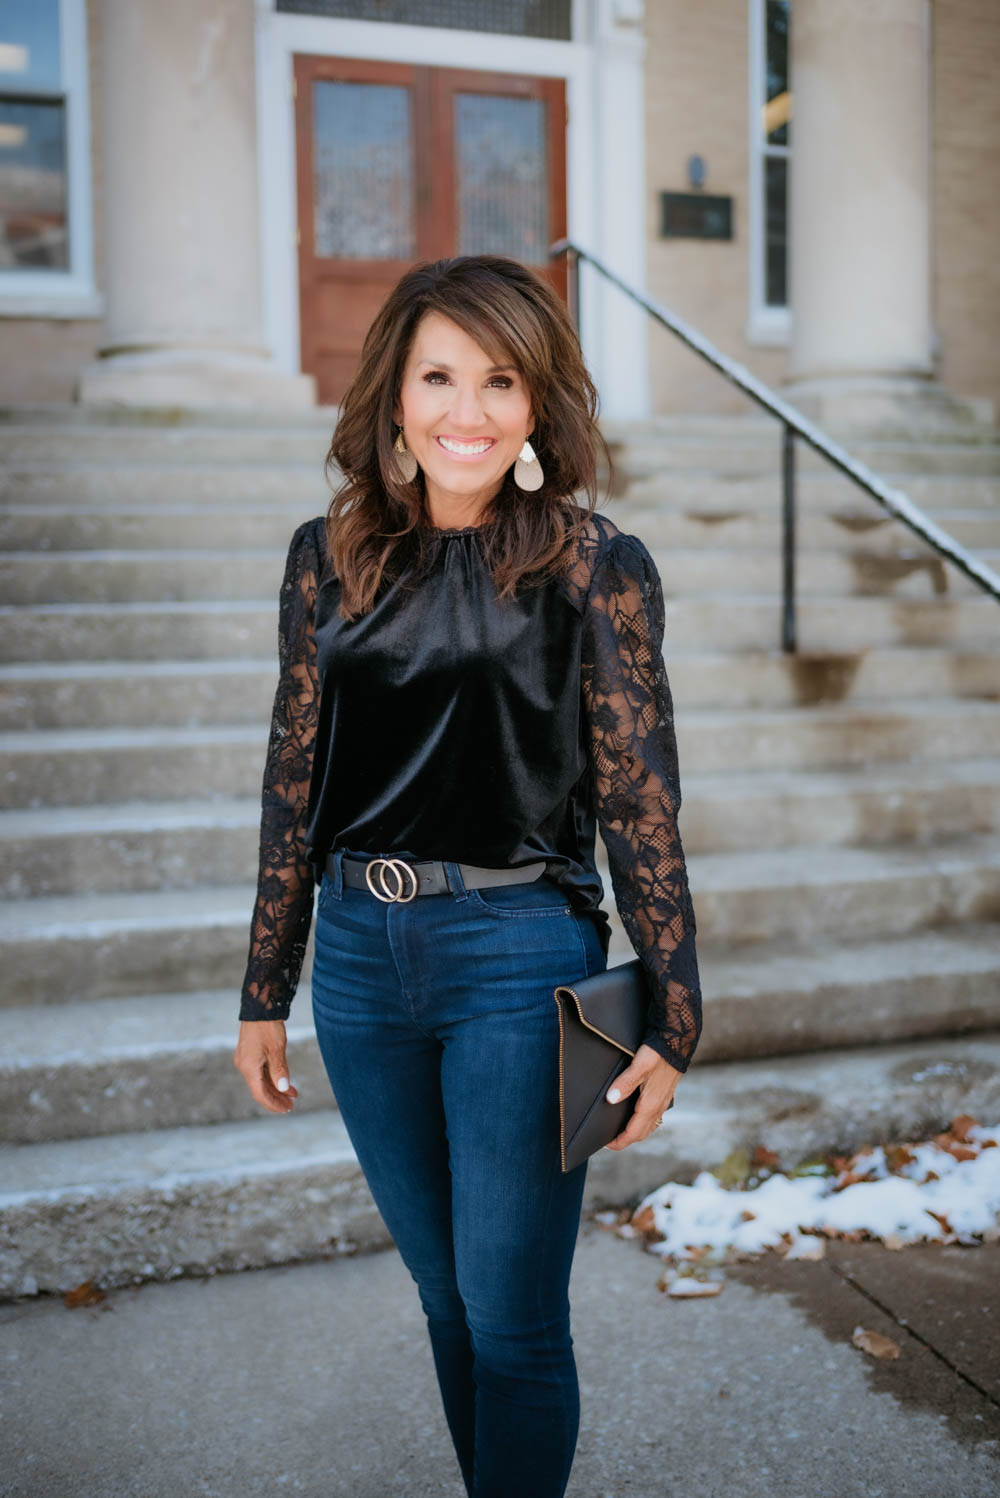 It's Here! The Cyndi Spivey Blouses